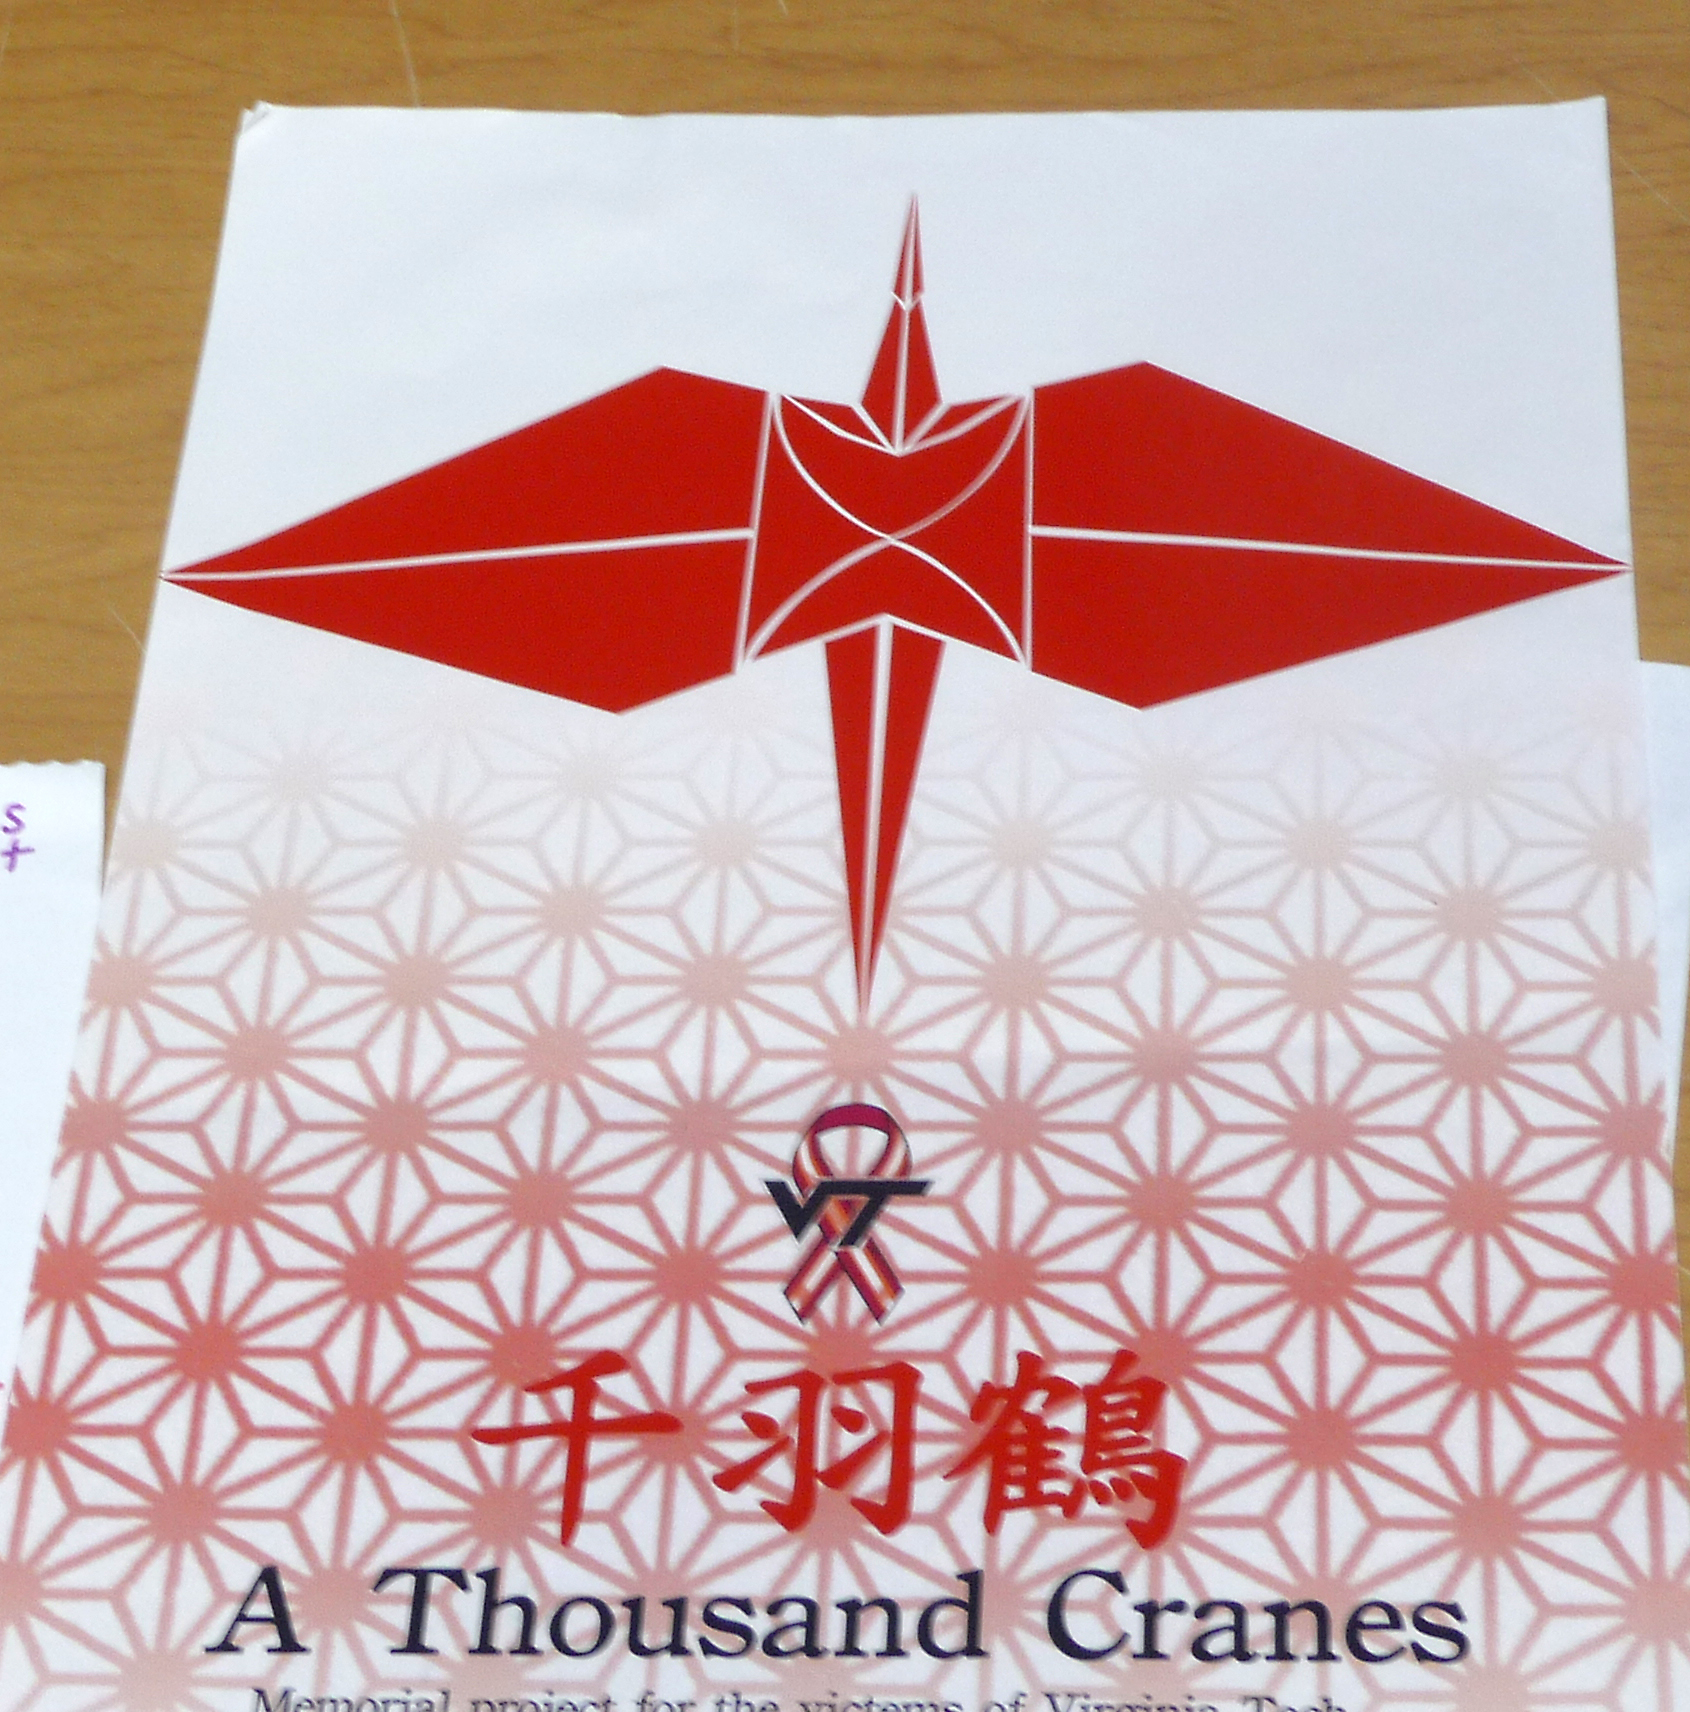 Poster from A Thousand Cranes Memorial project for the victims of Virginia tech